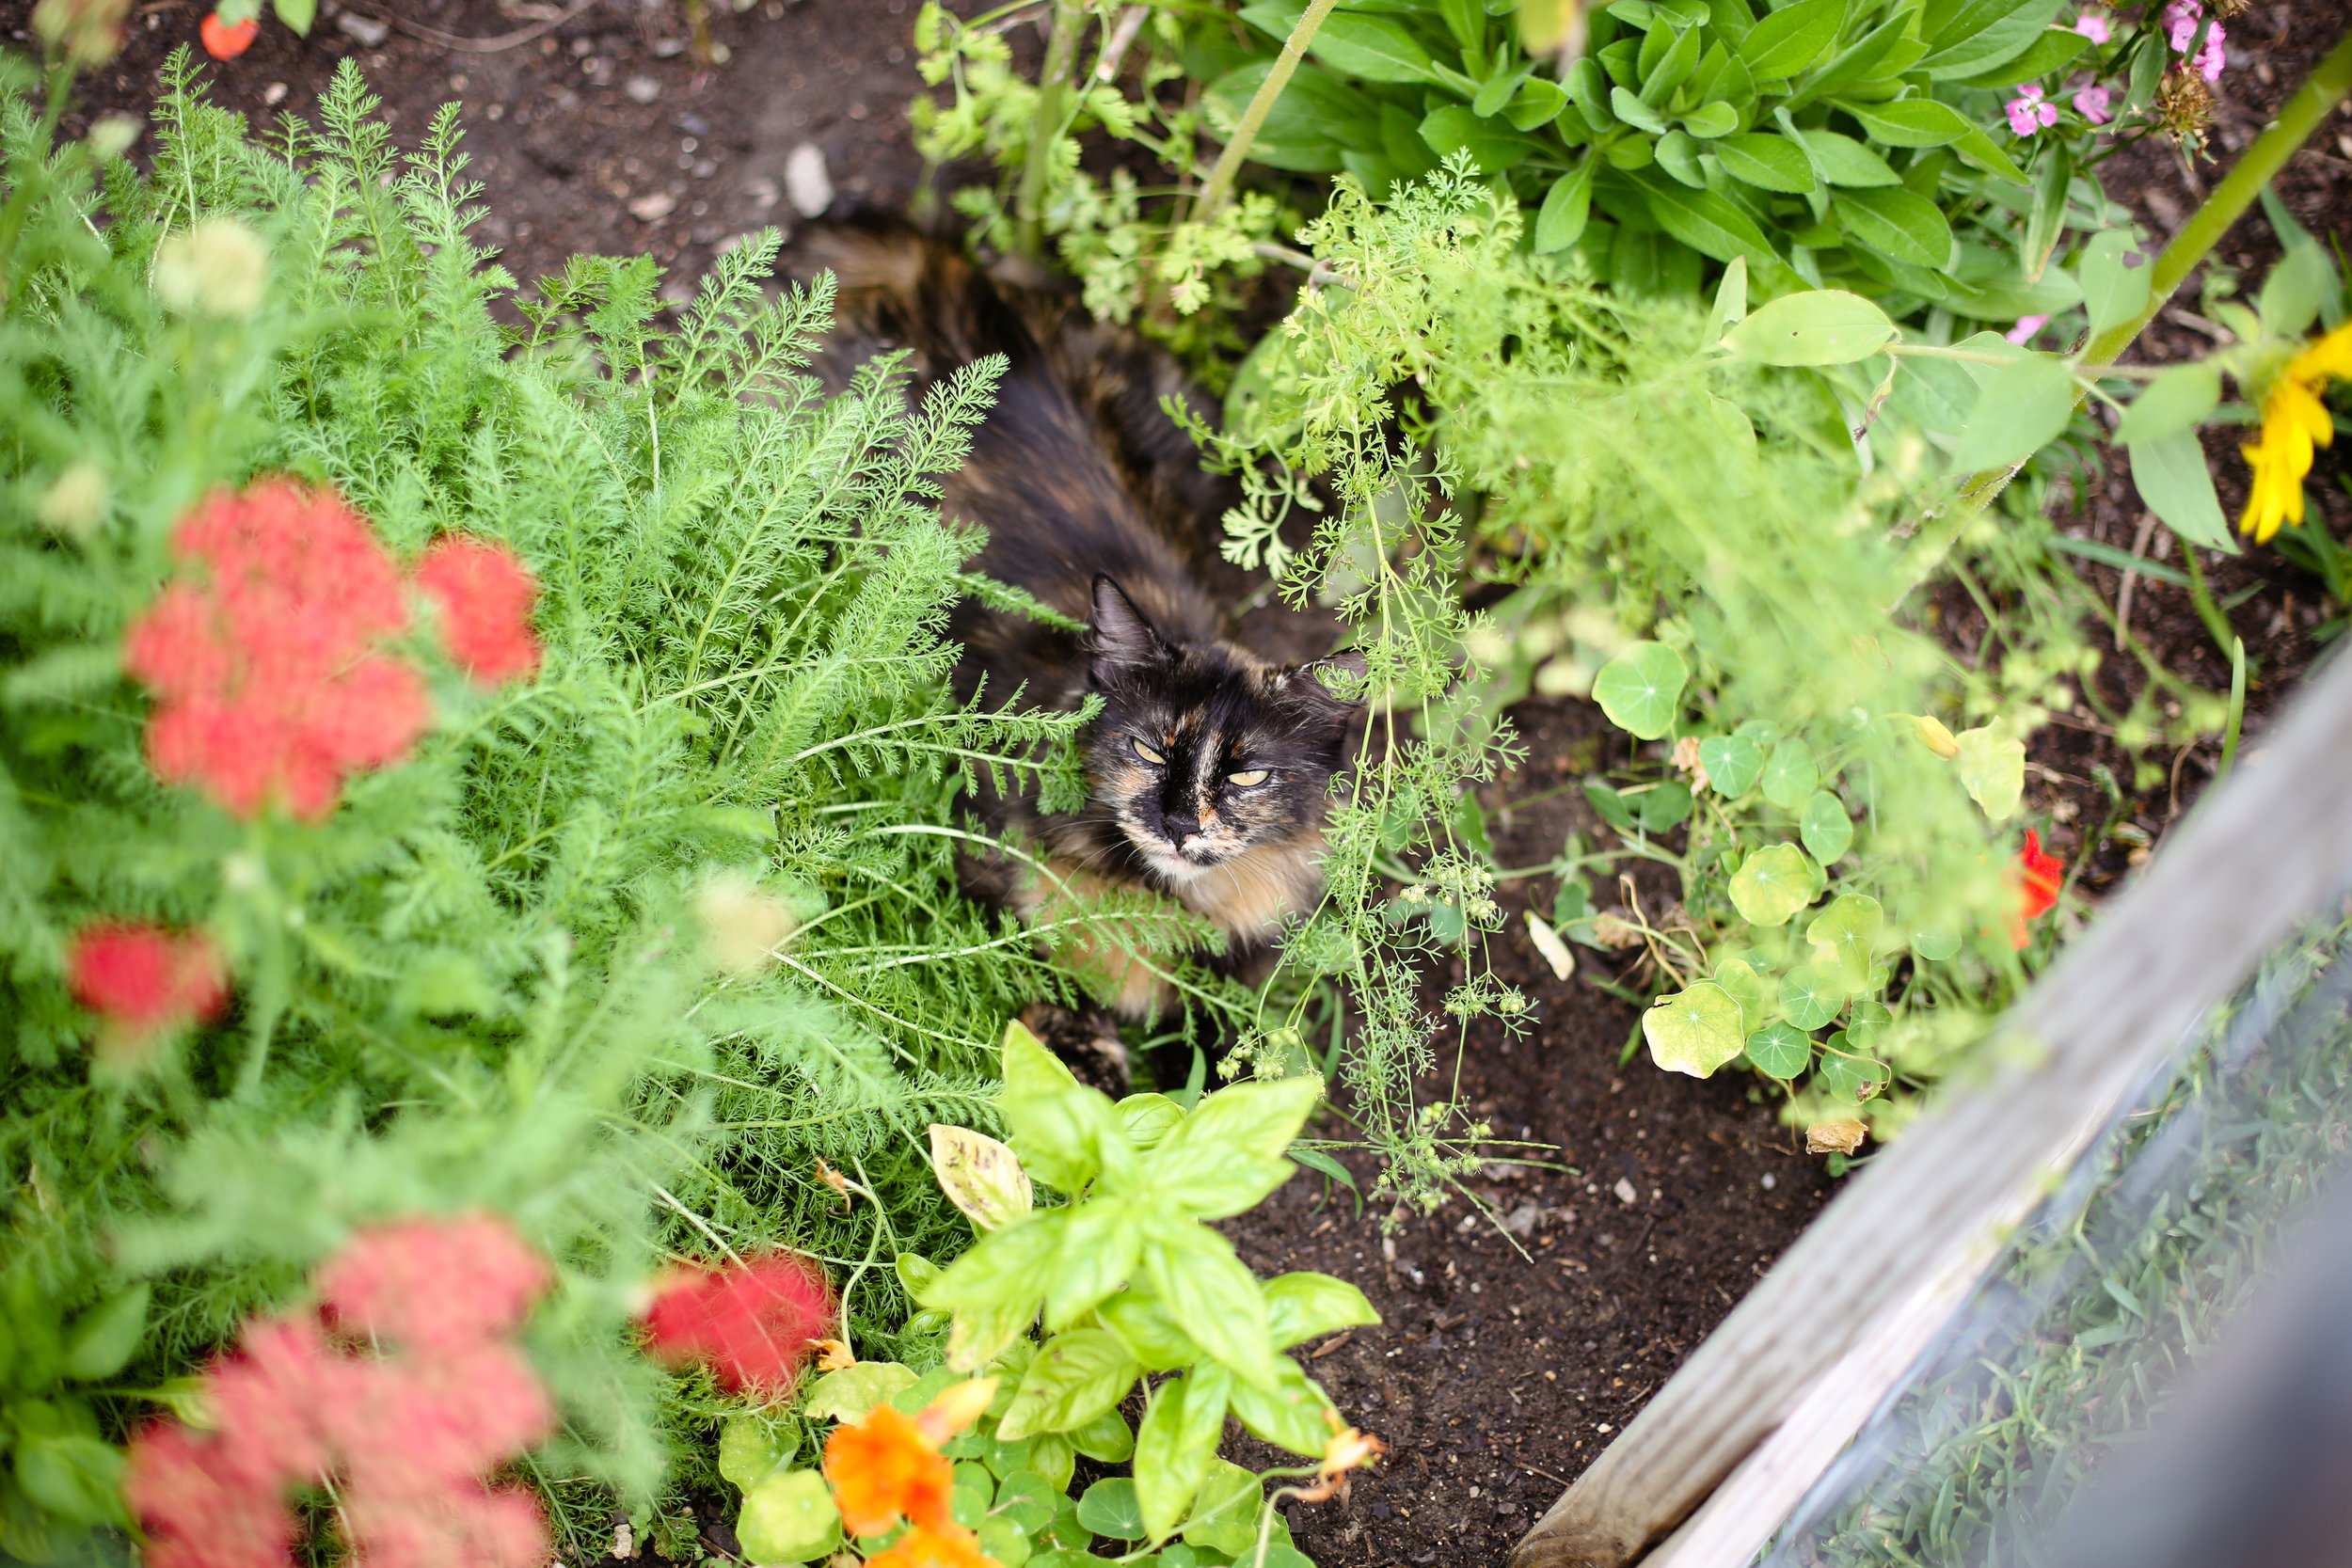 Mama kitty, Tiger, surrounded by nasturtium, basil, cilantro, bell peppers, and a flower I planted last summer that is trying to take over.